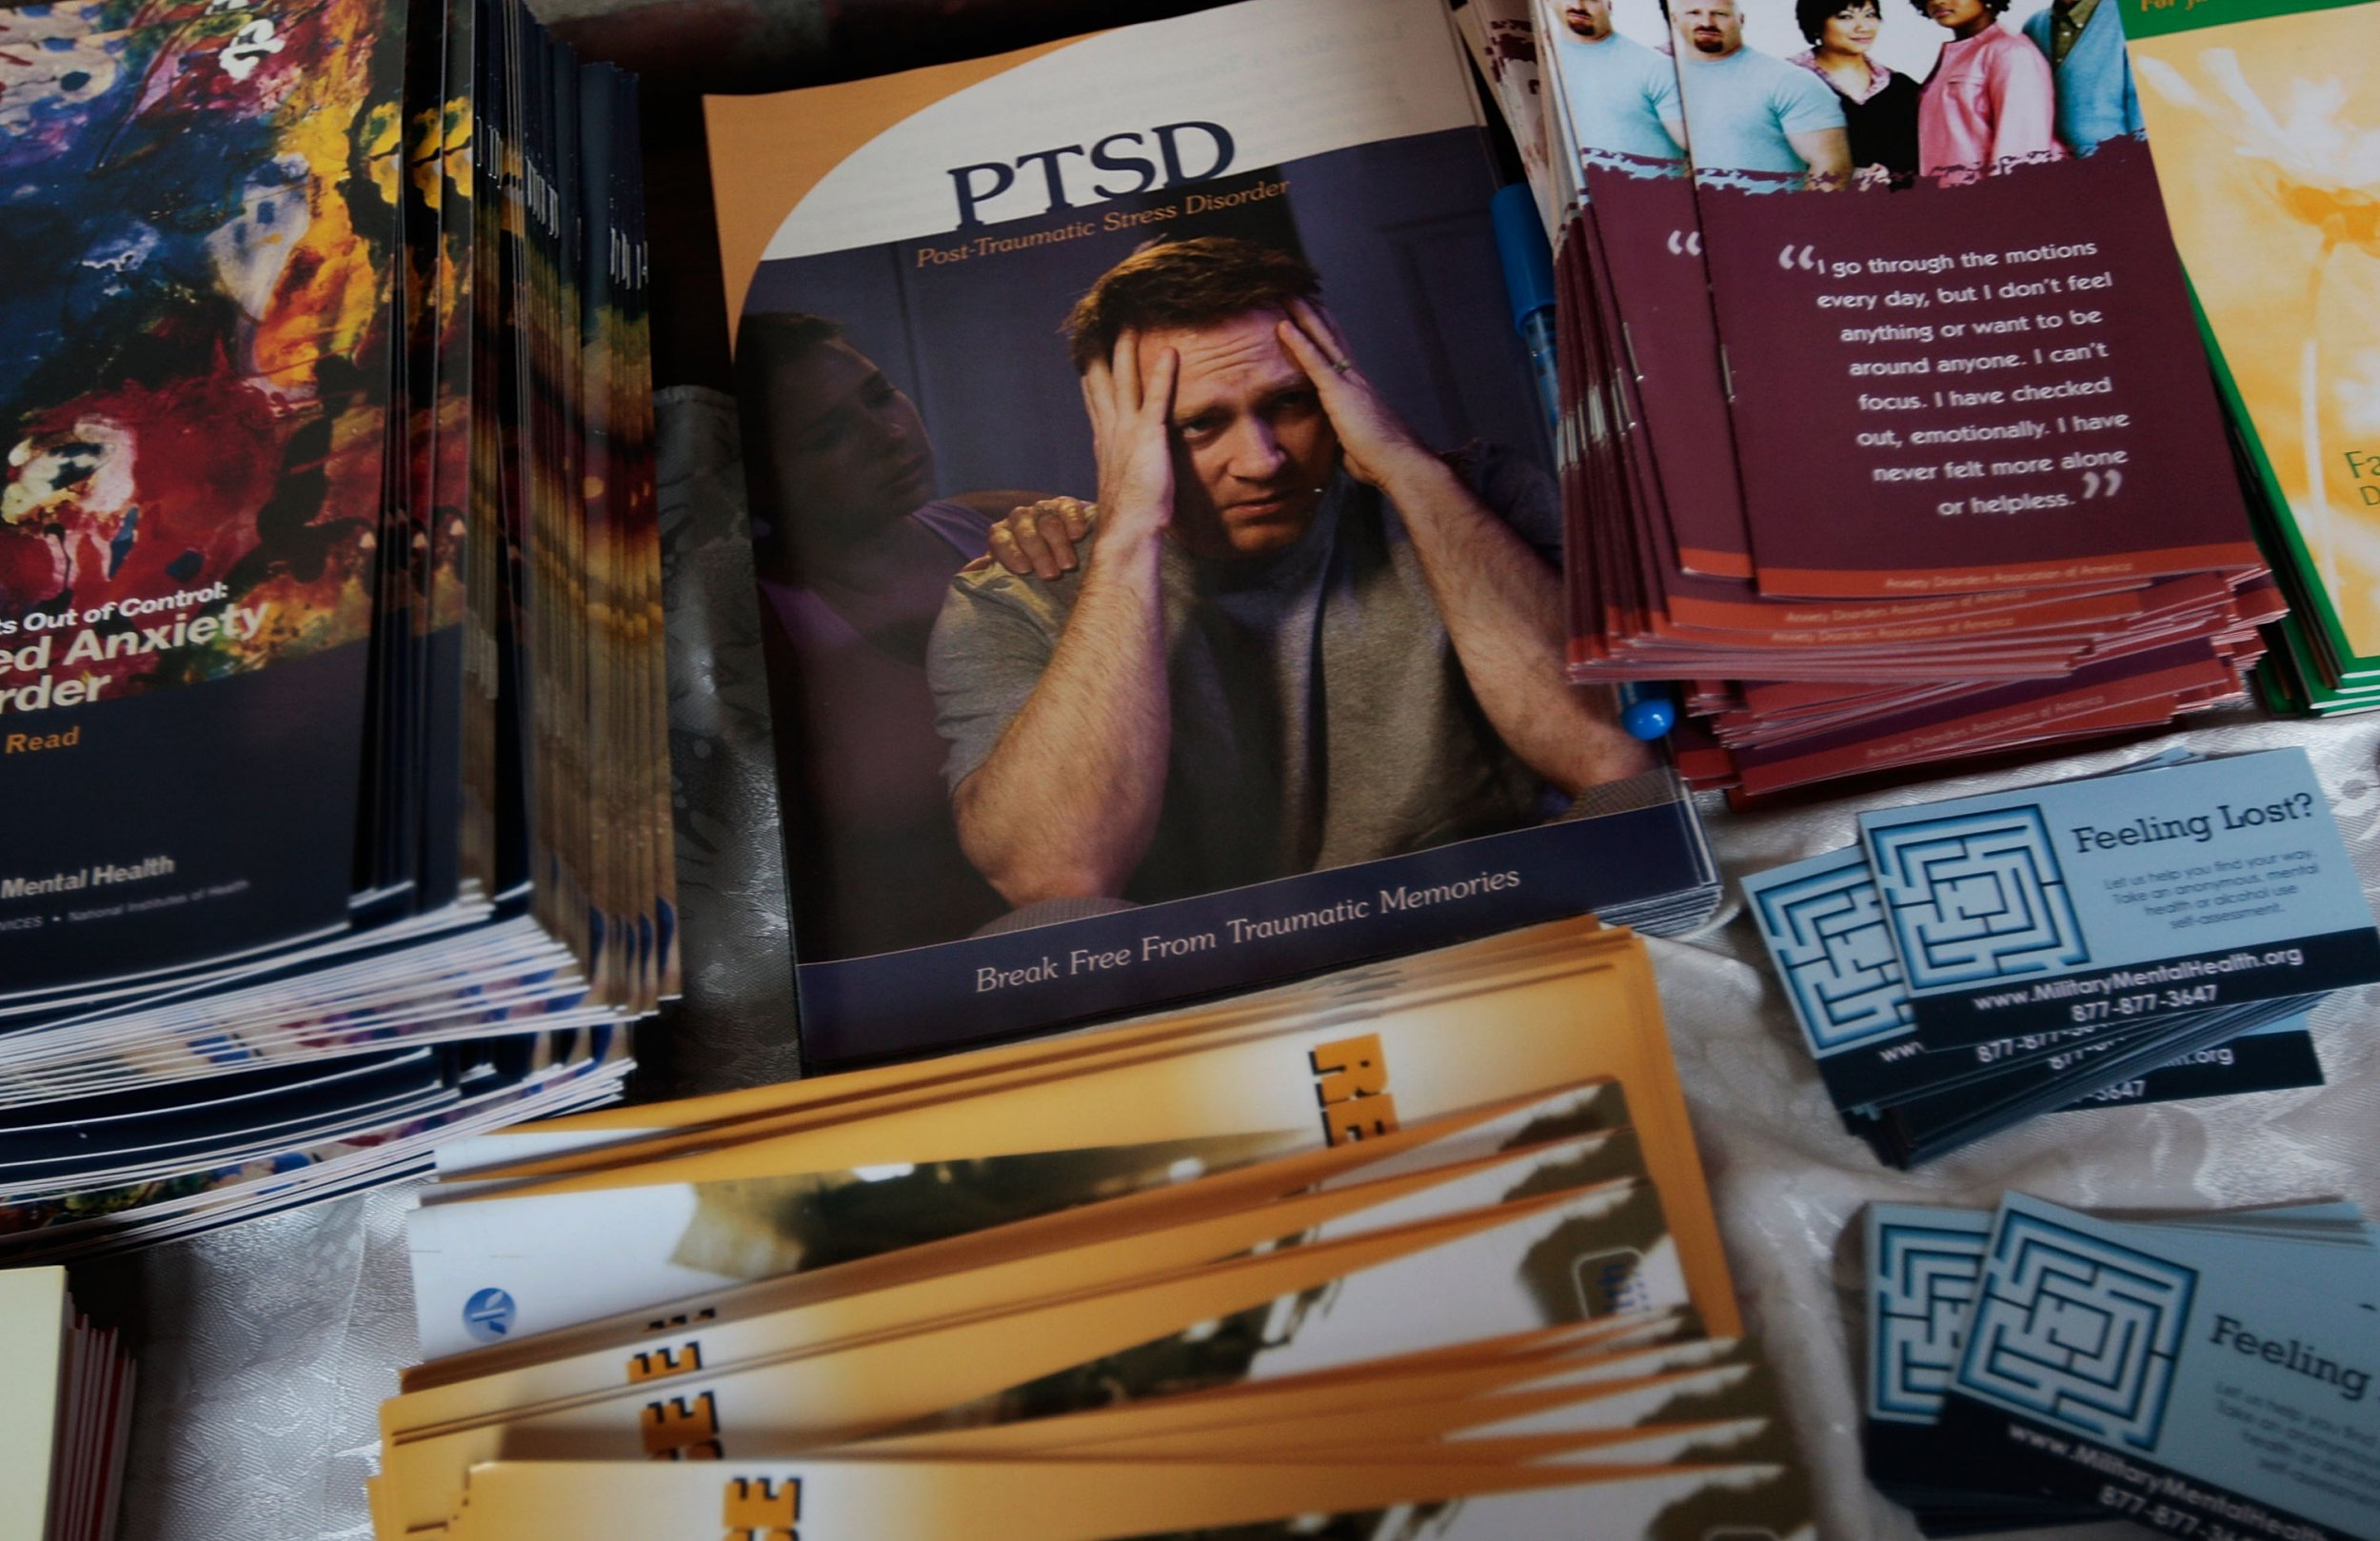 PTSD pamphlets